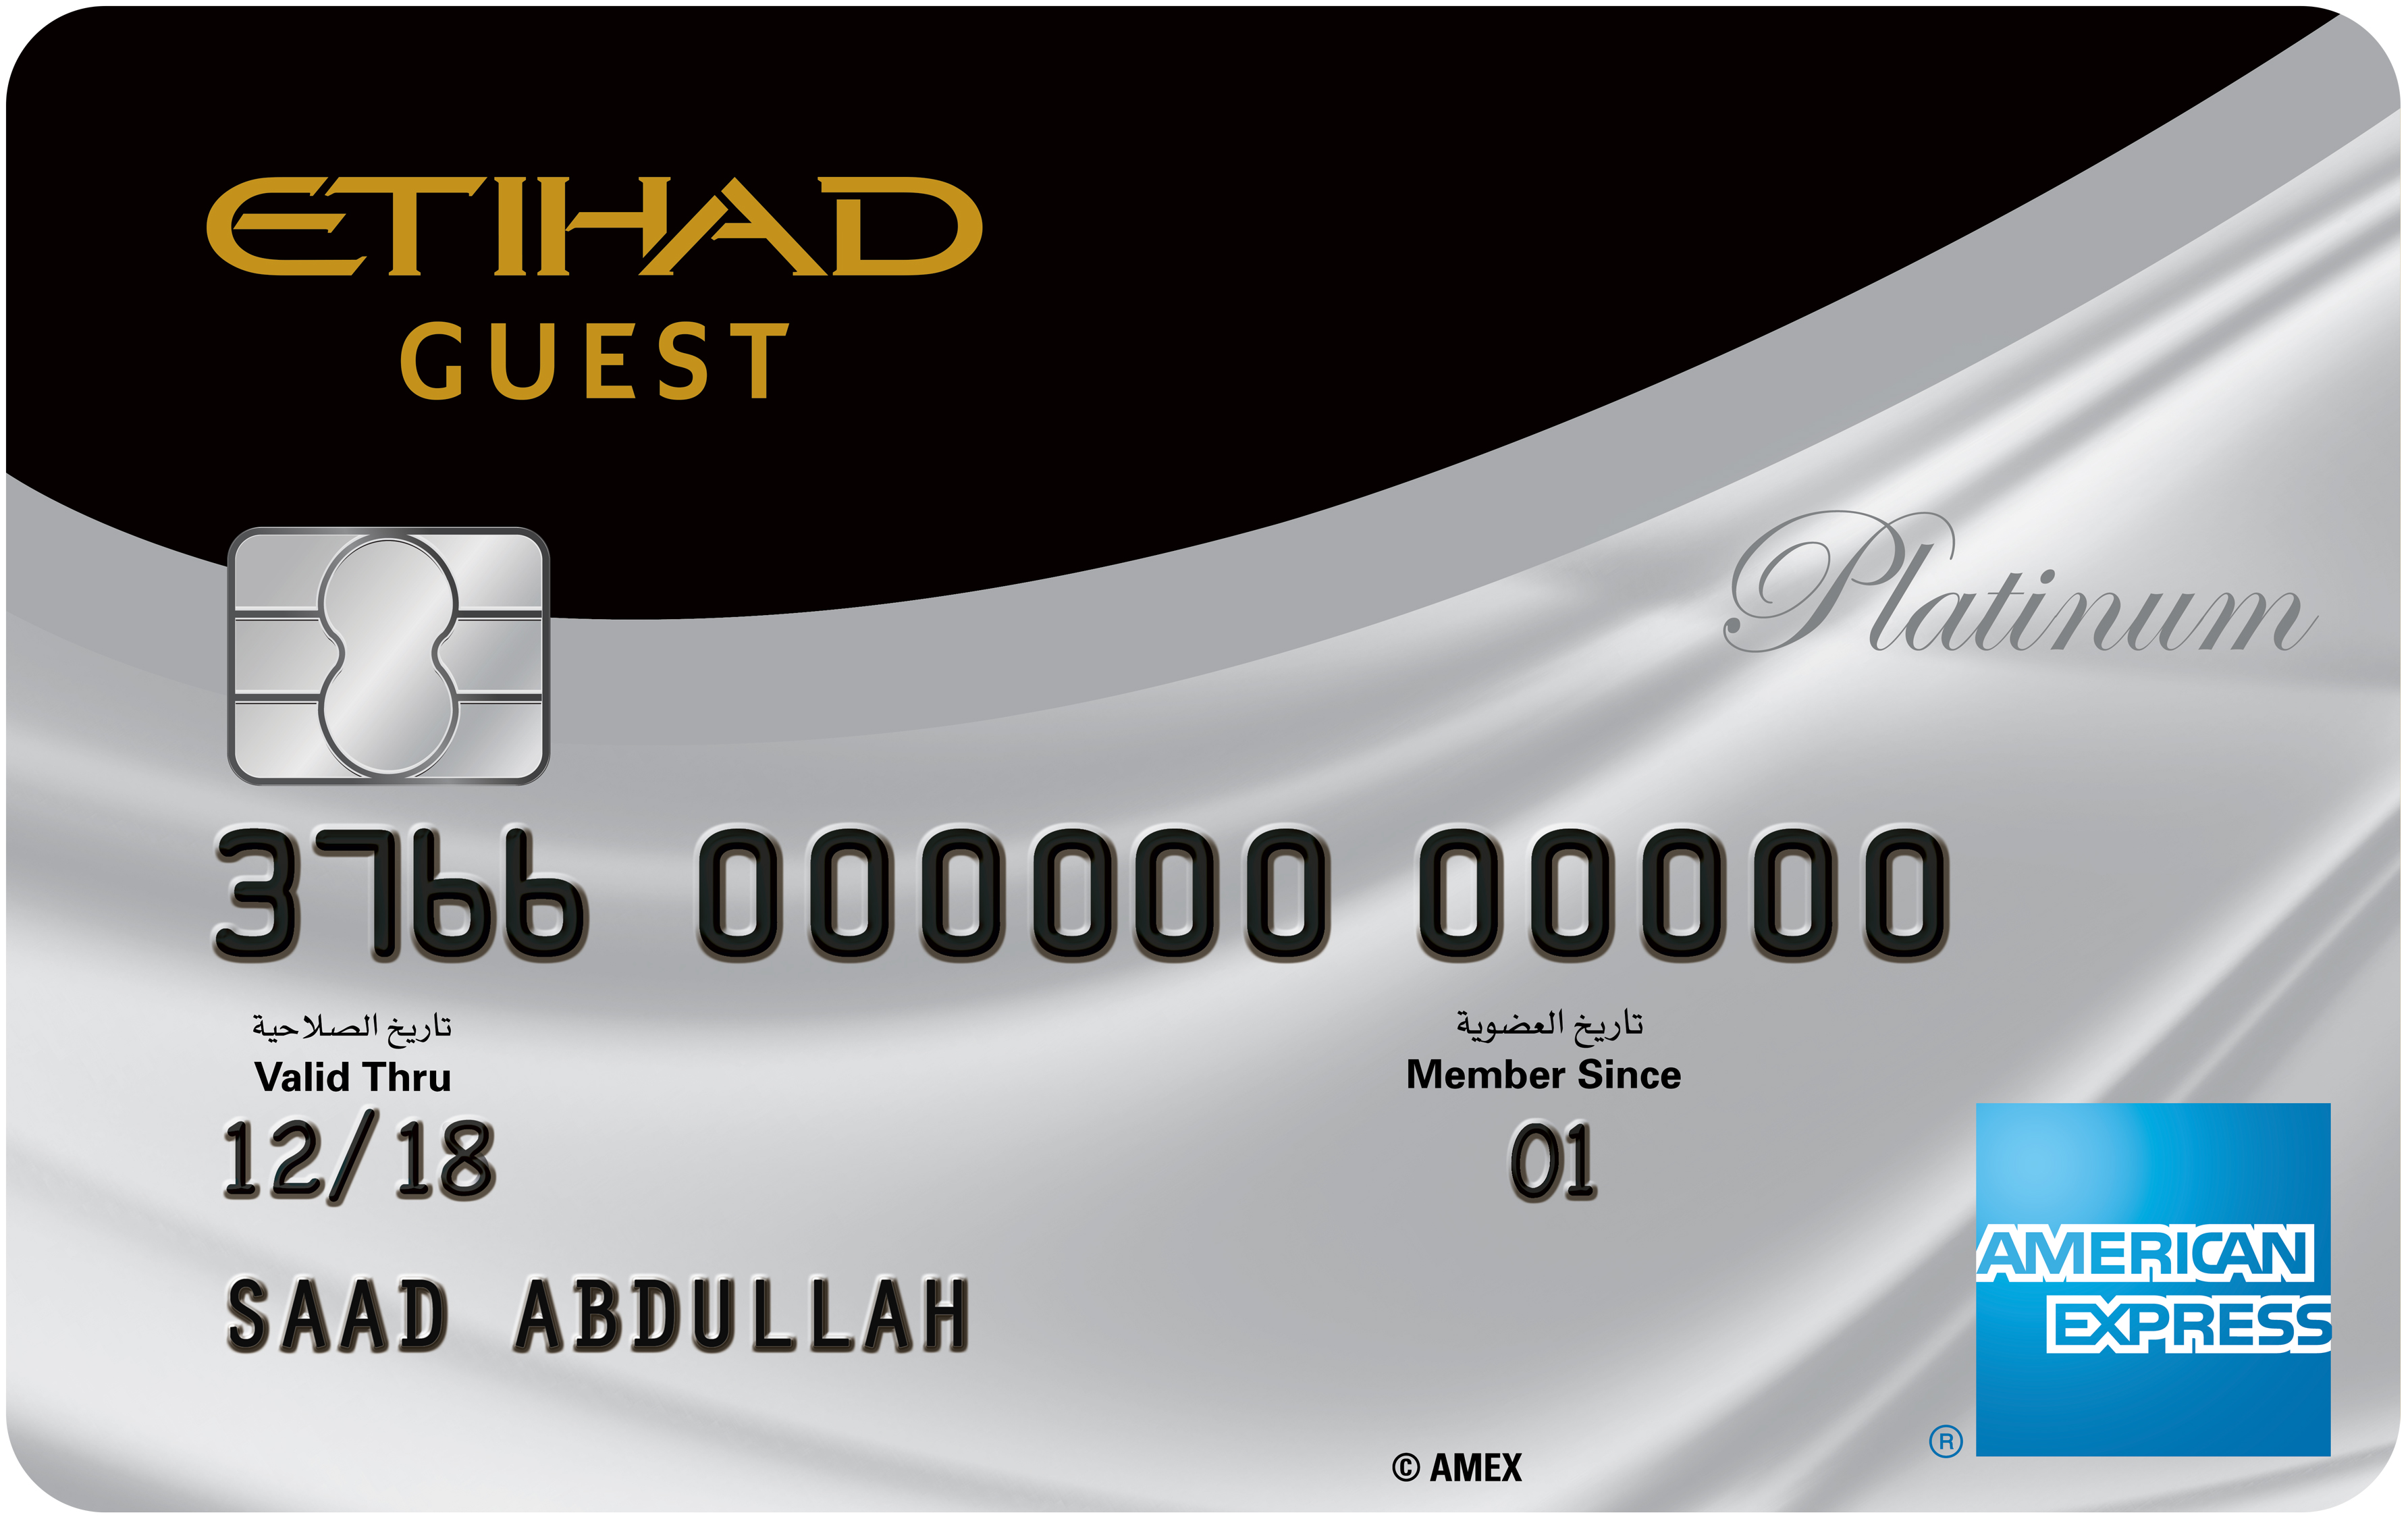 The American Express - Etihad Guest Platinum Credit Card